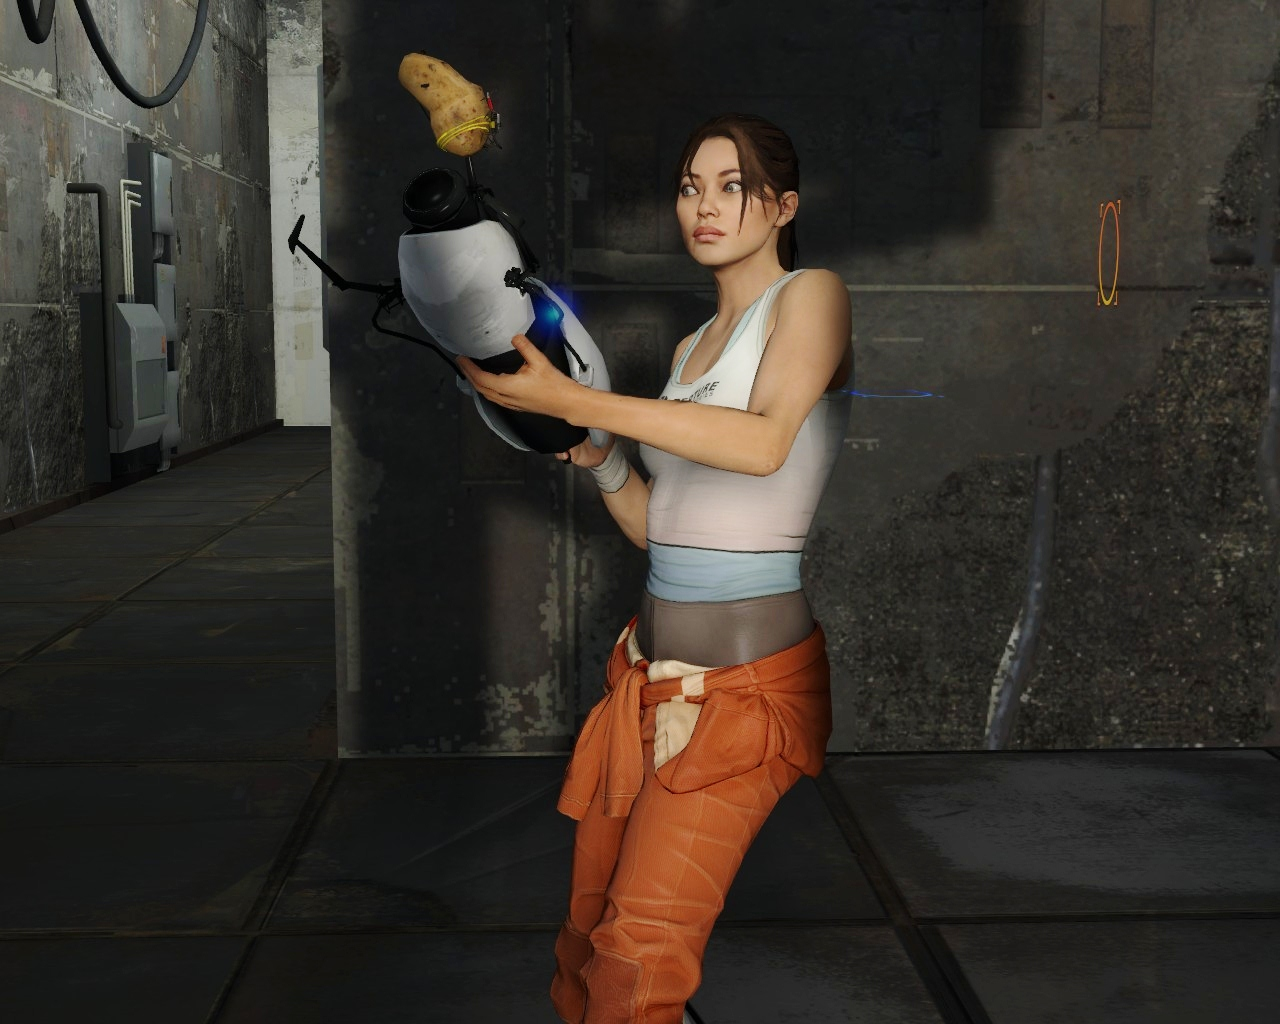 Big boobed chell portal 2 xxx images